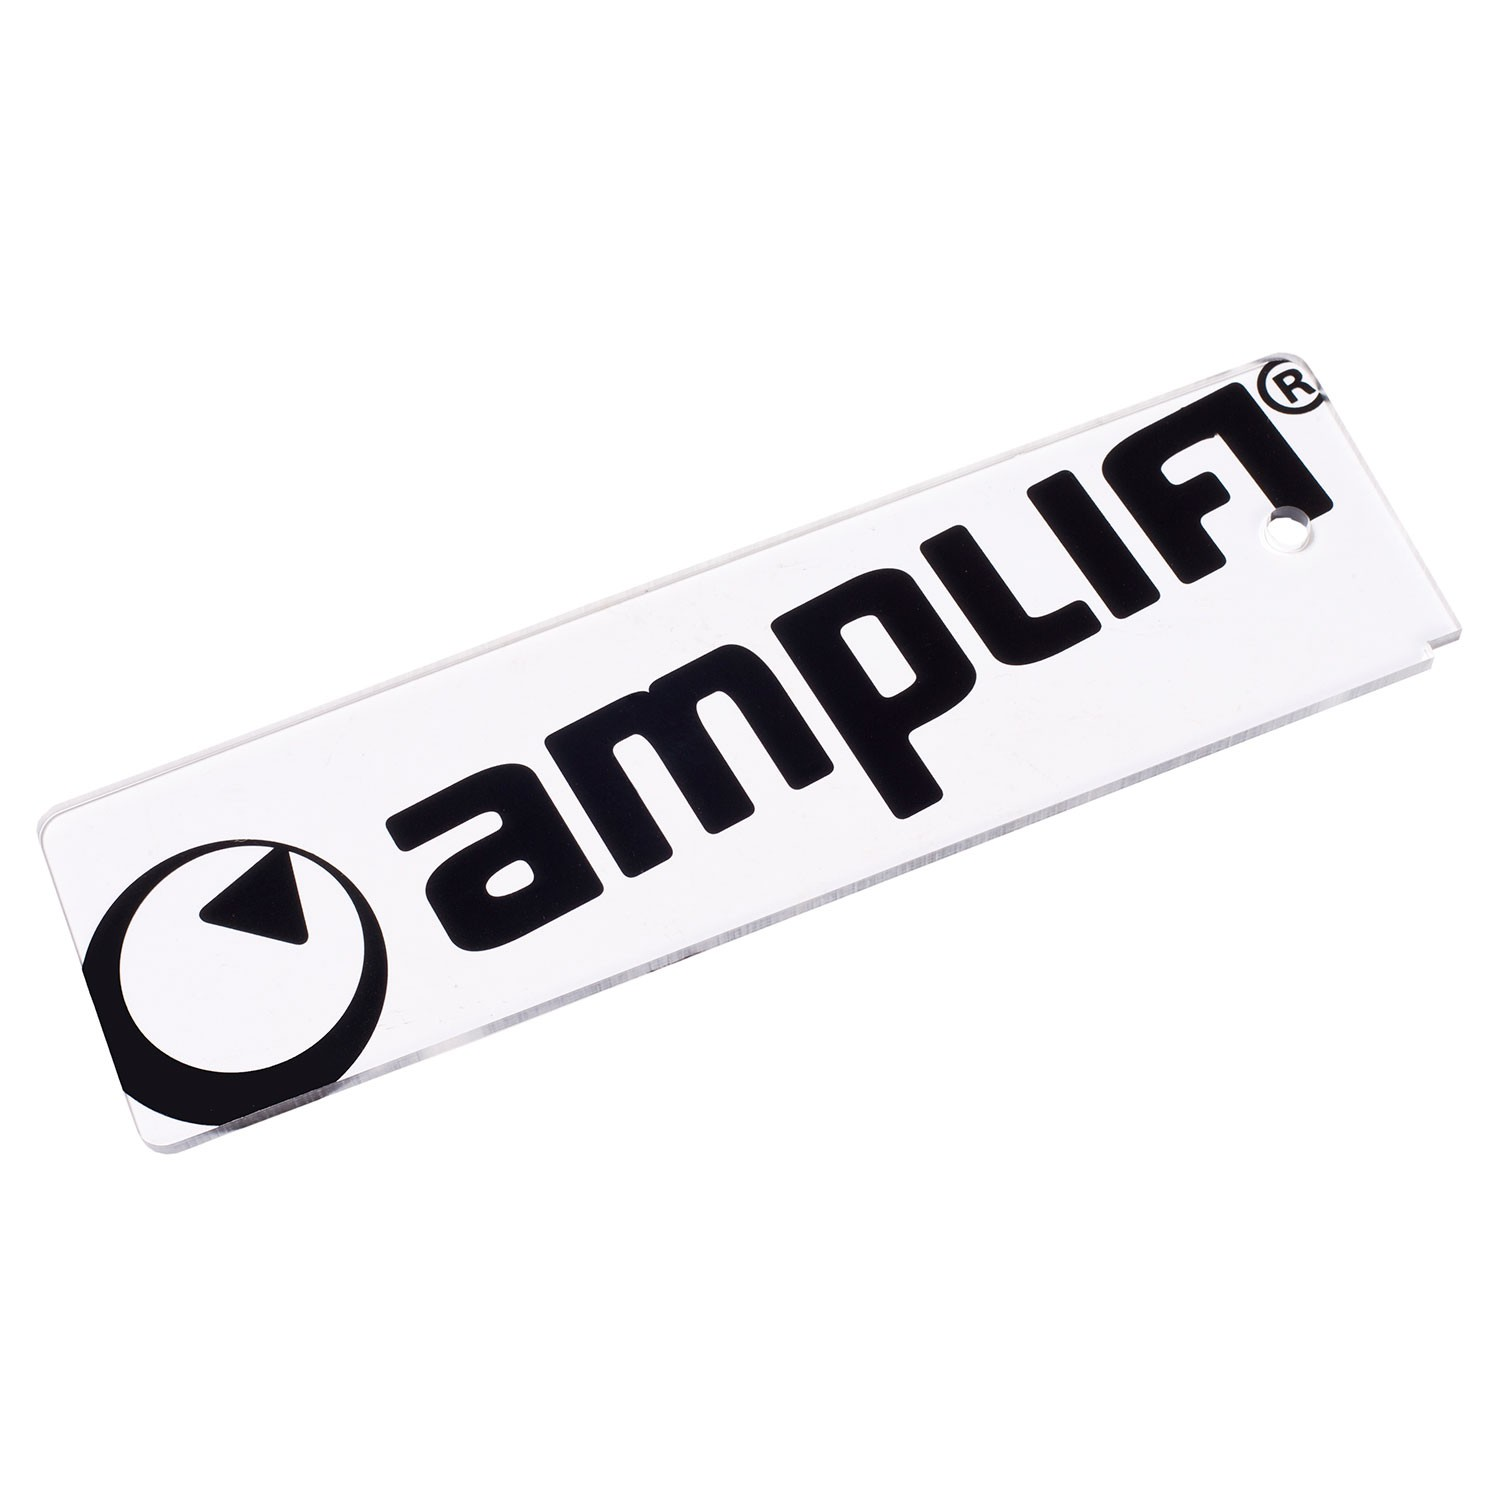 Amplifi Base Razor Long clear